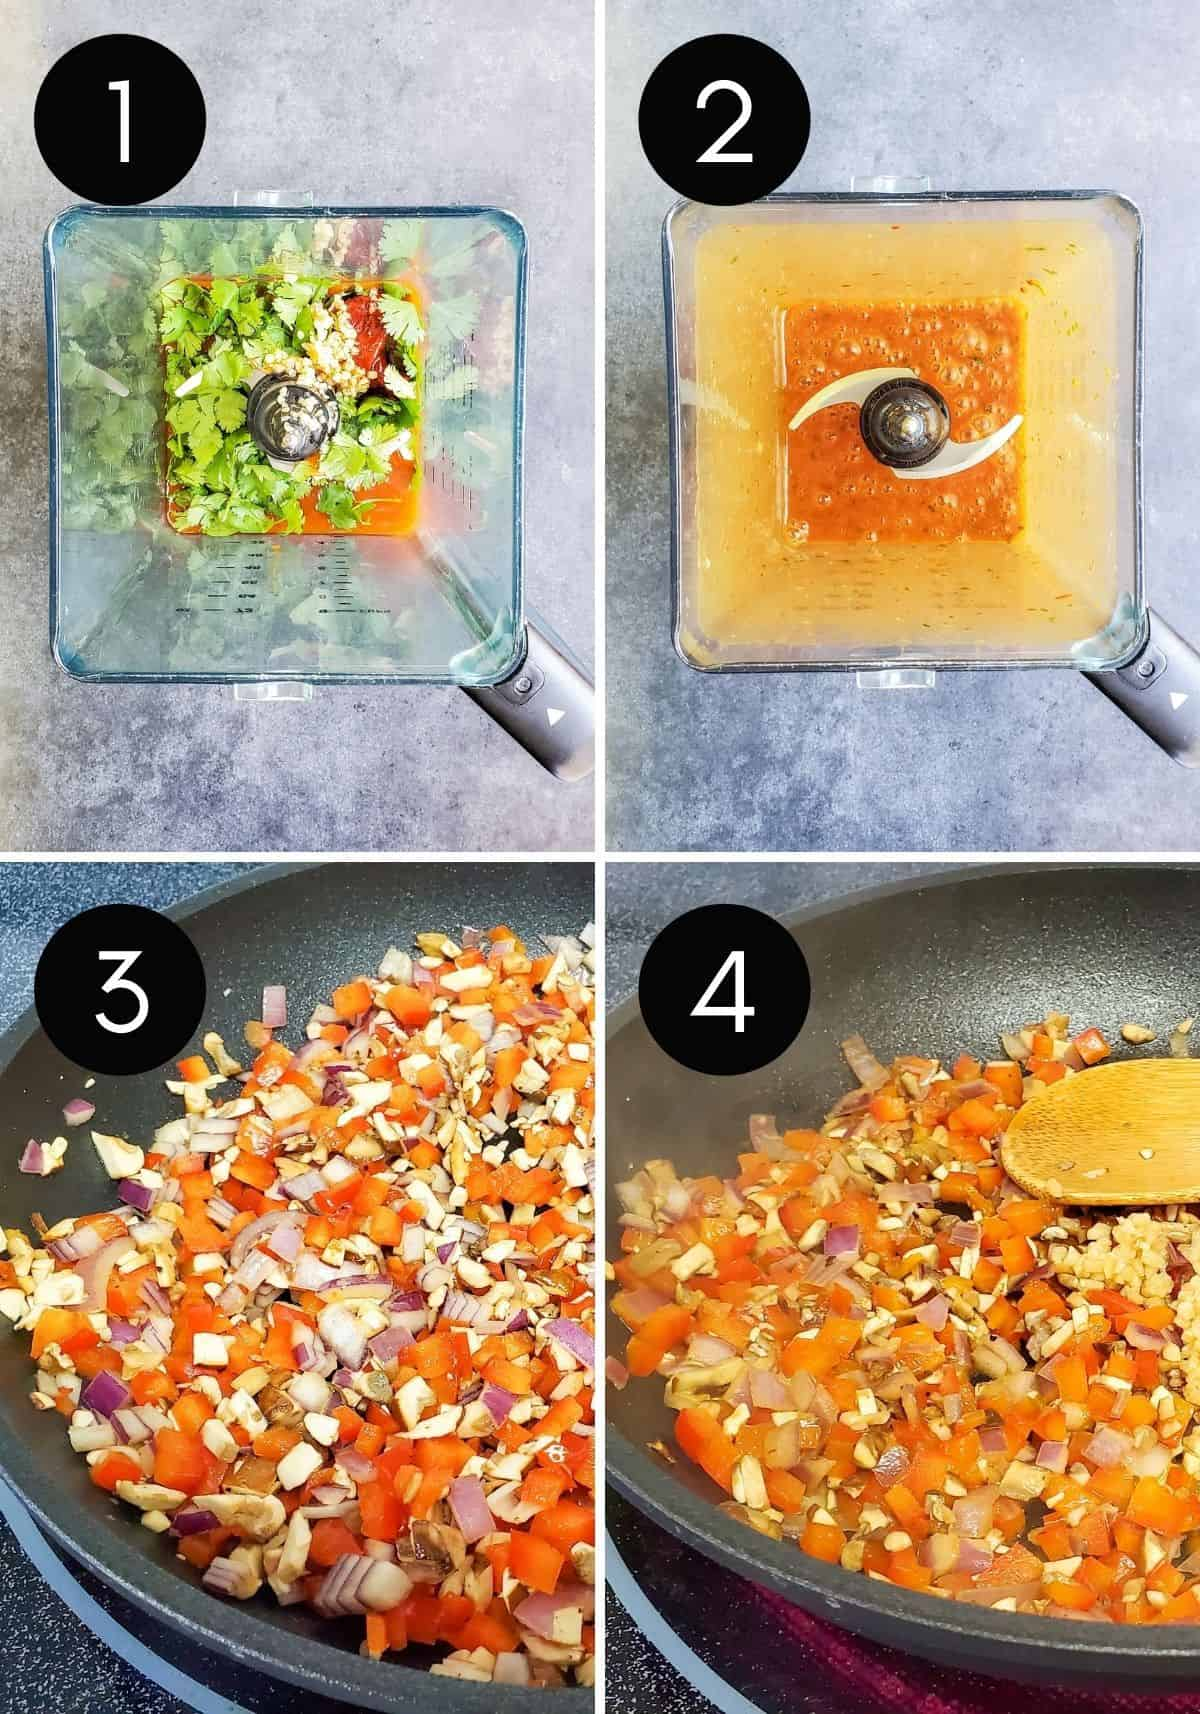 Prep images showing four numbered collage pictures on sauce and veggies being made.